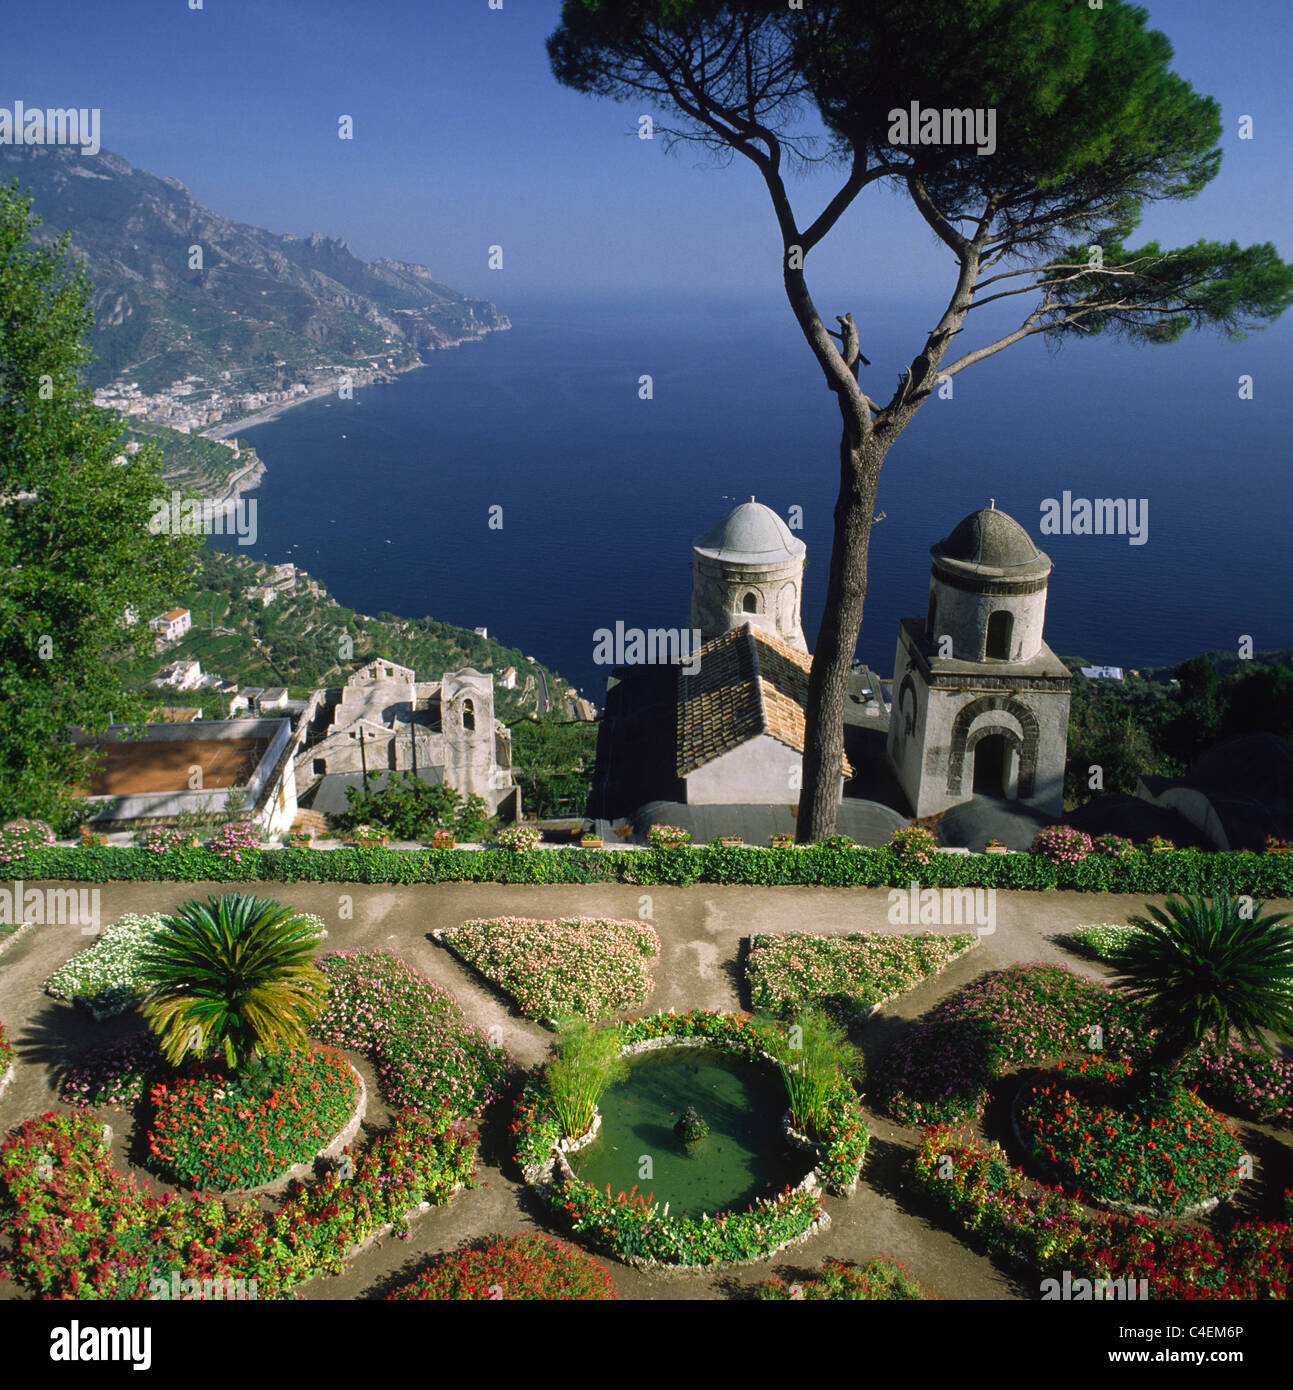 Italy Amalfi Coast View From Ravello Villa Rufolo